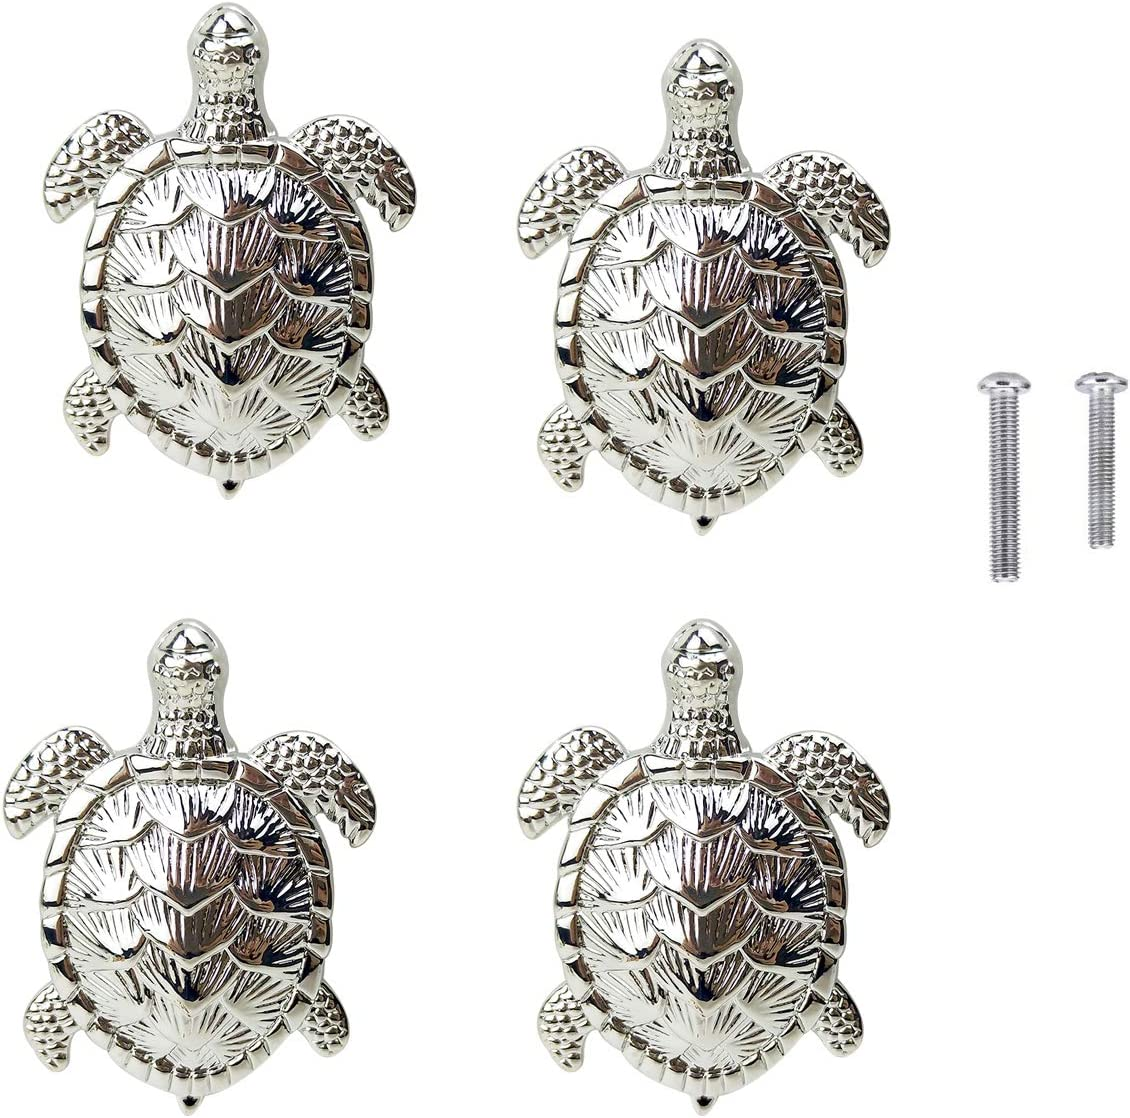 4 Turtle Door Knobs